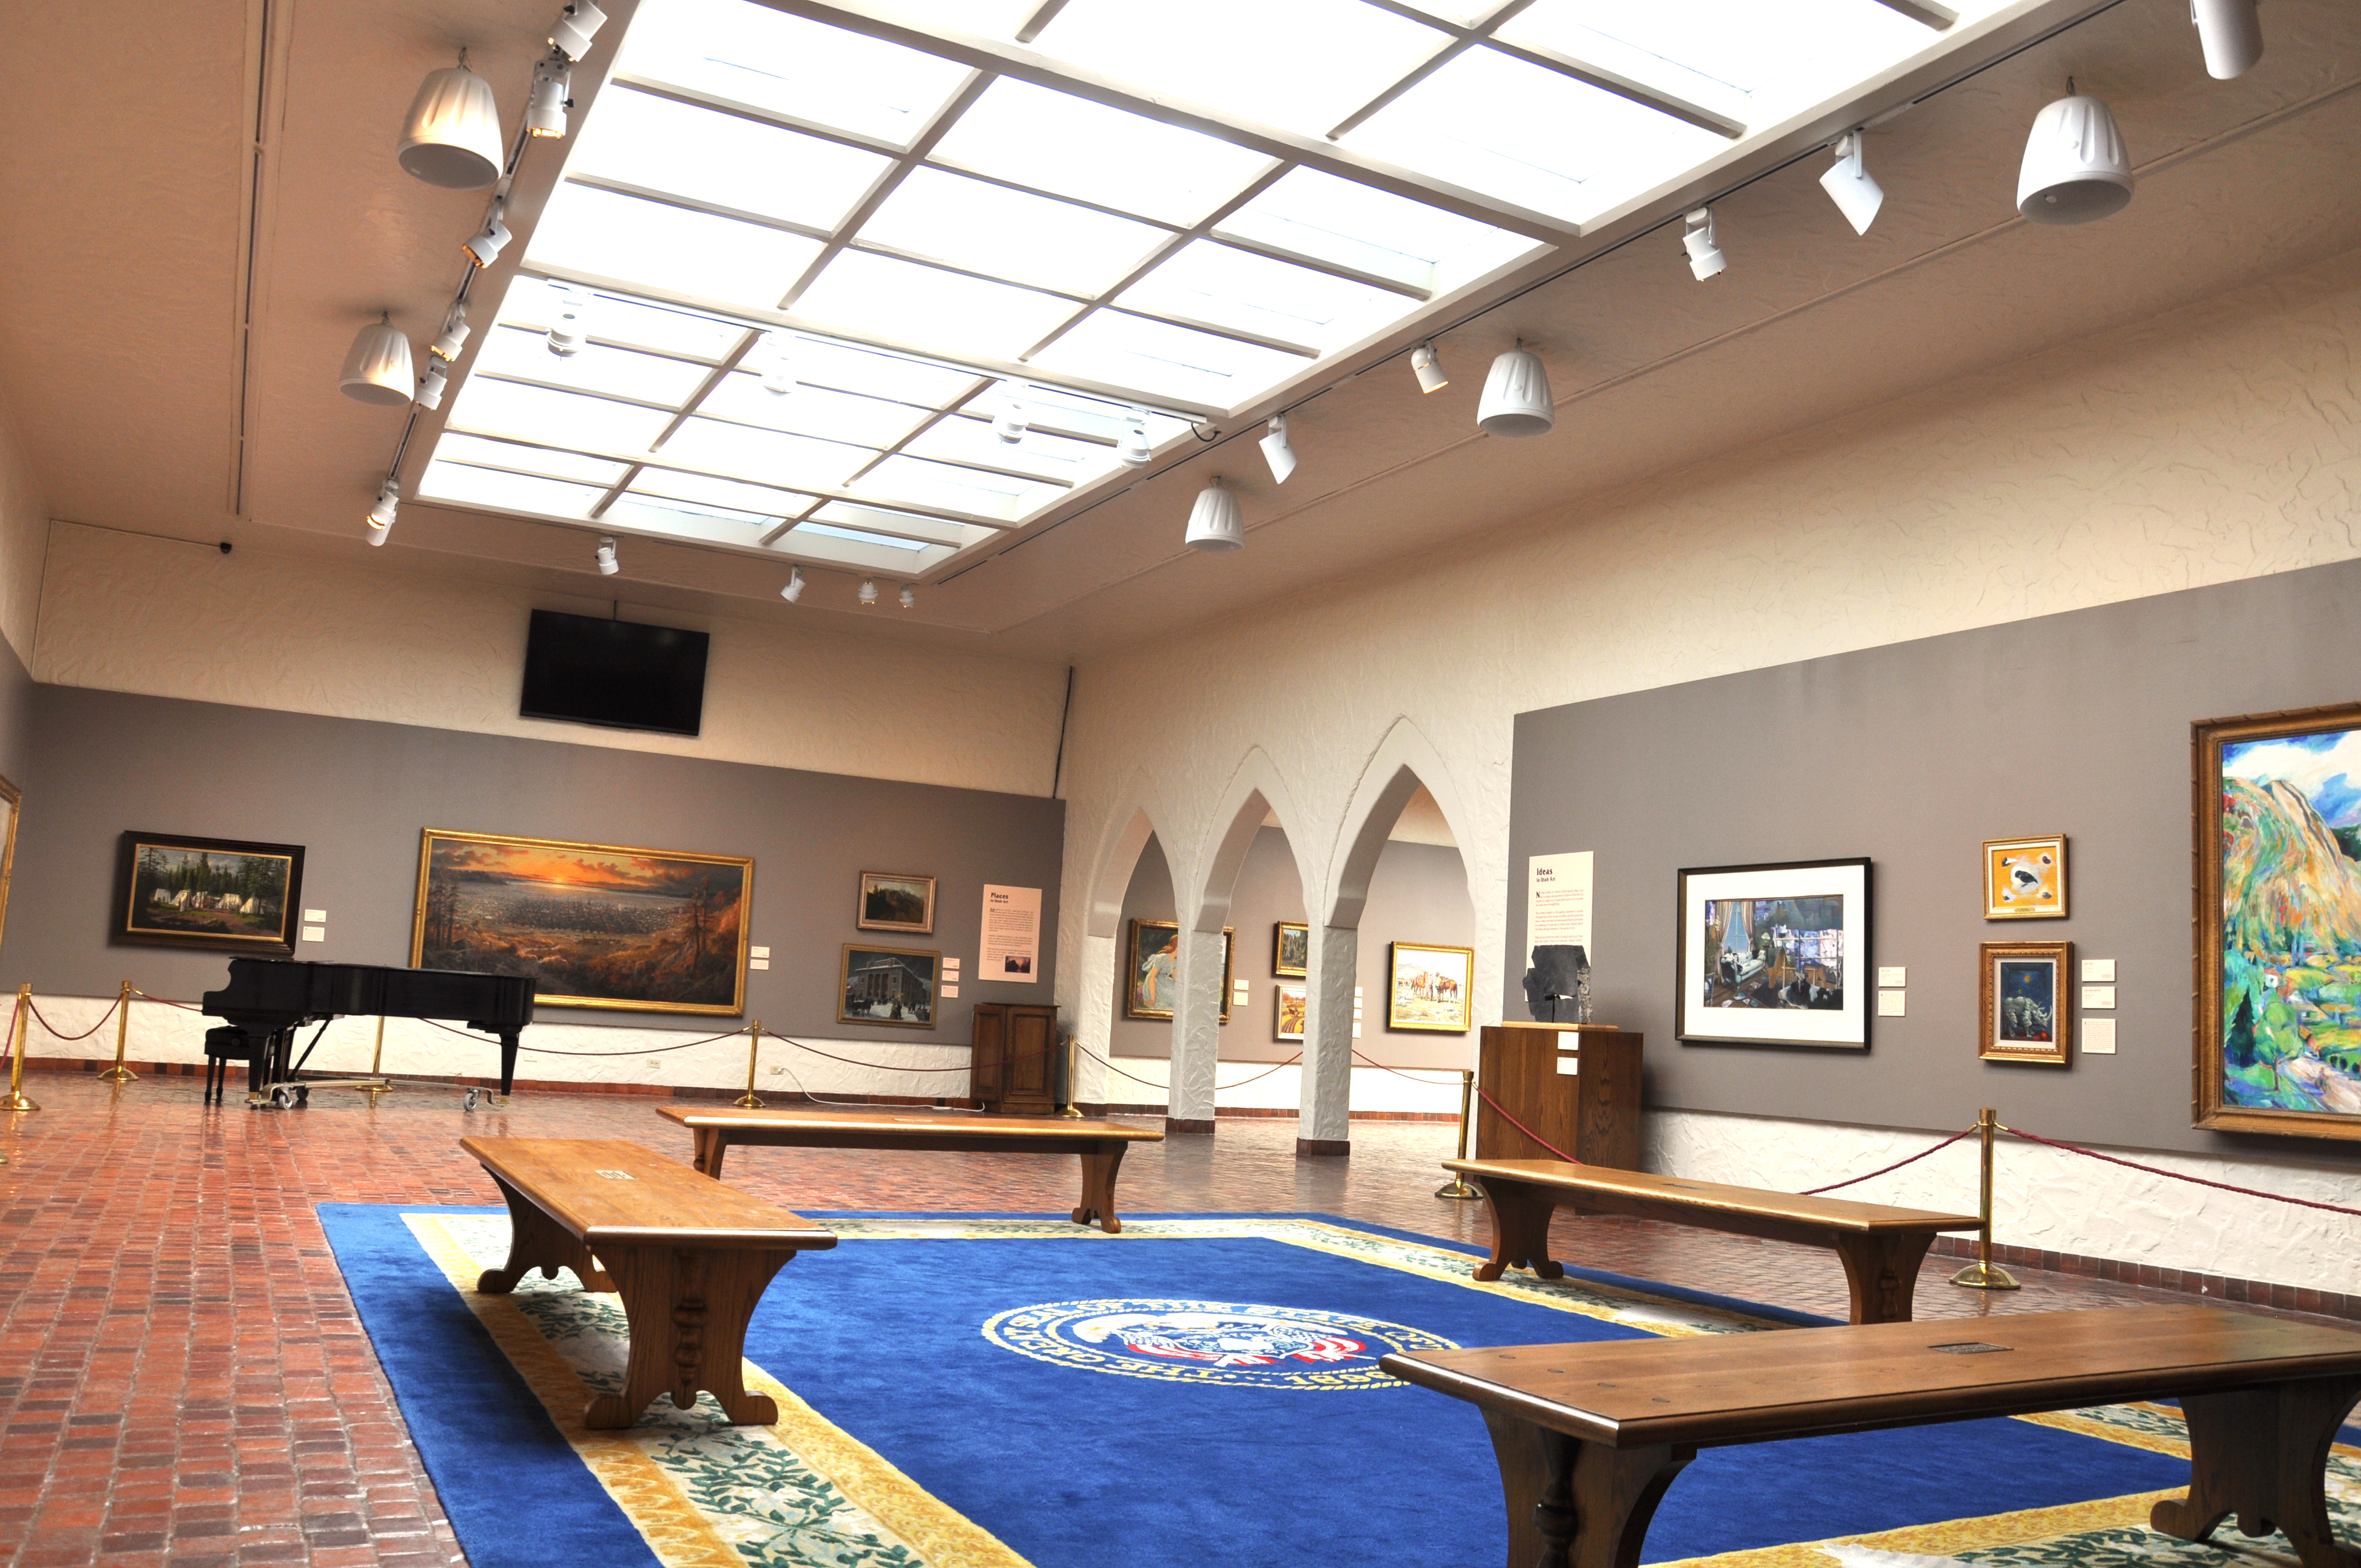 The Music Gallery at the Springville Museum of Art